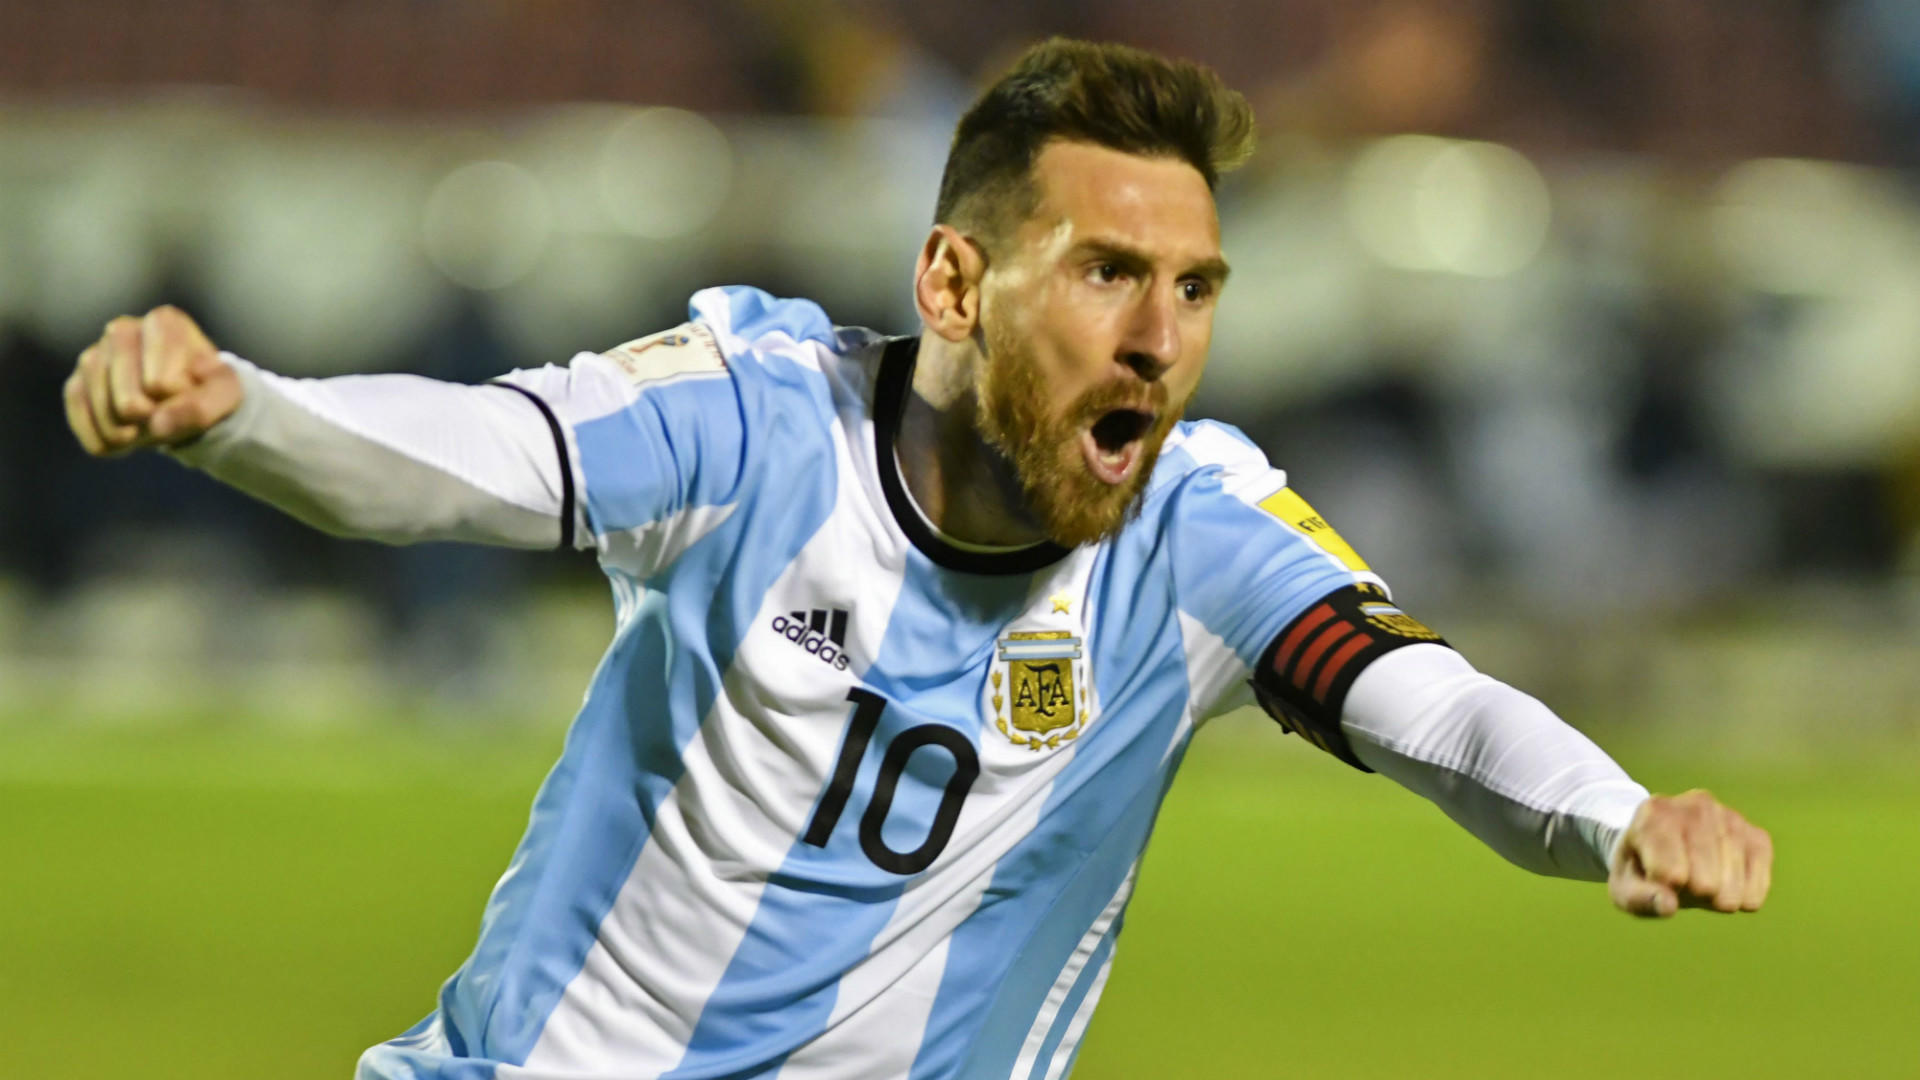 Messi tells Brazil coach Tite to 'shut up' -